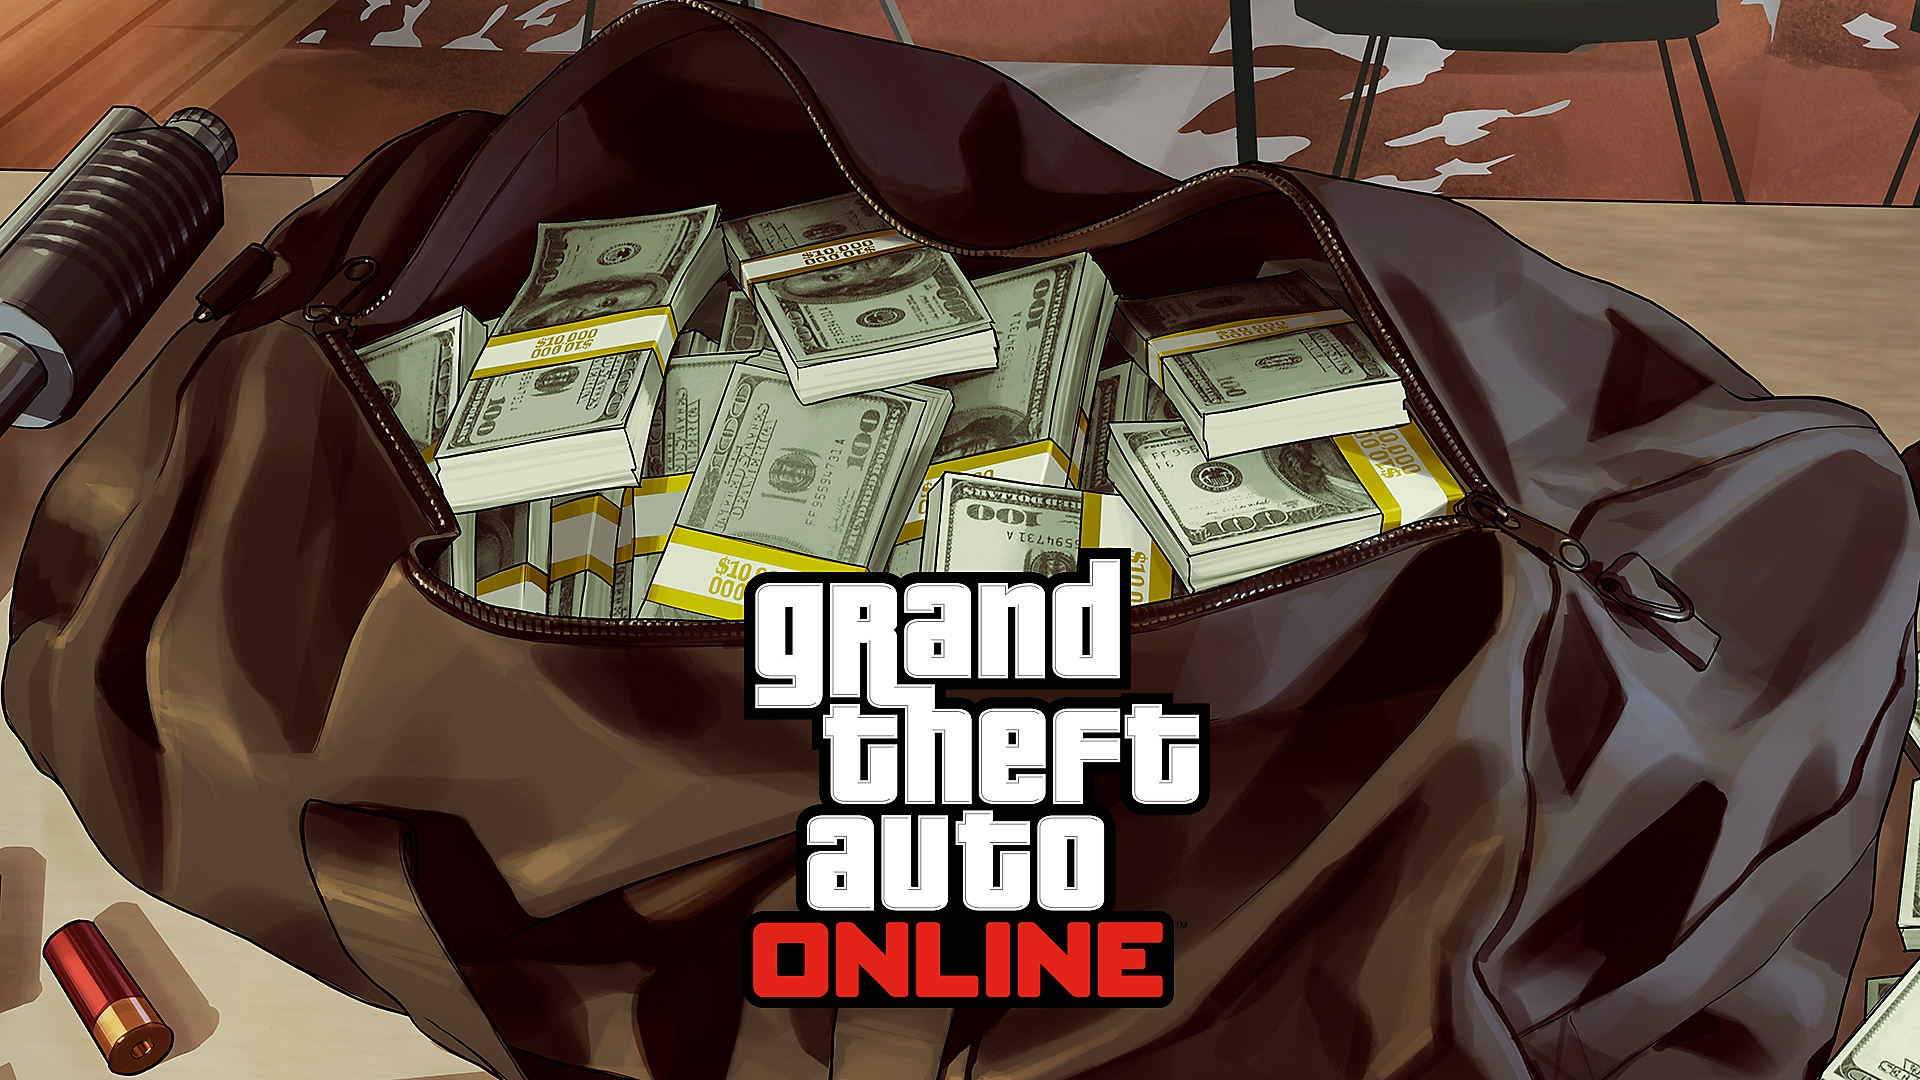 Grand Theft Auto Online – GTA$1M Offer Image